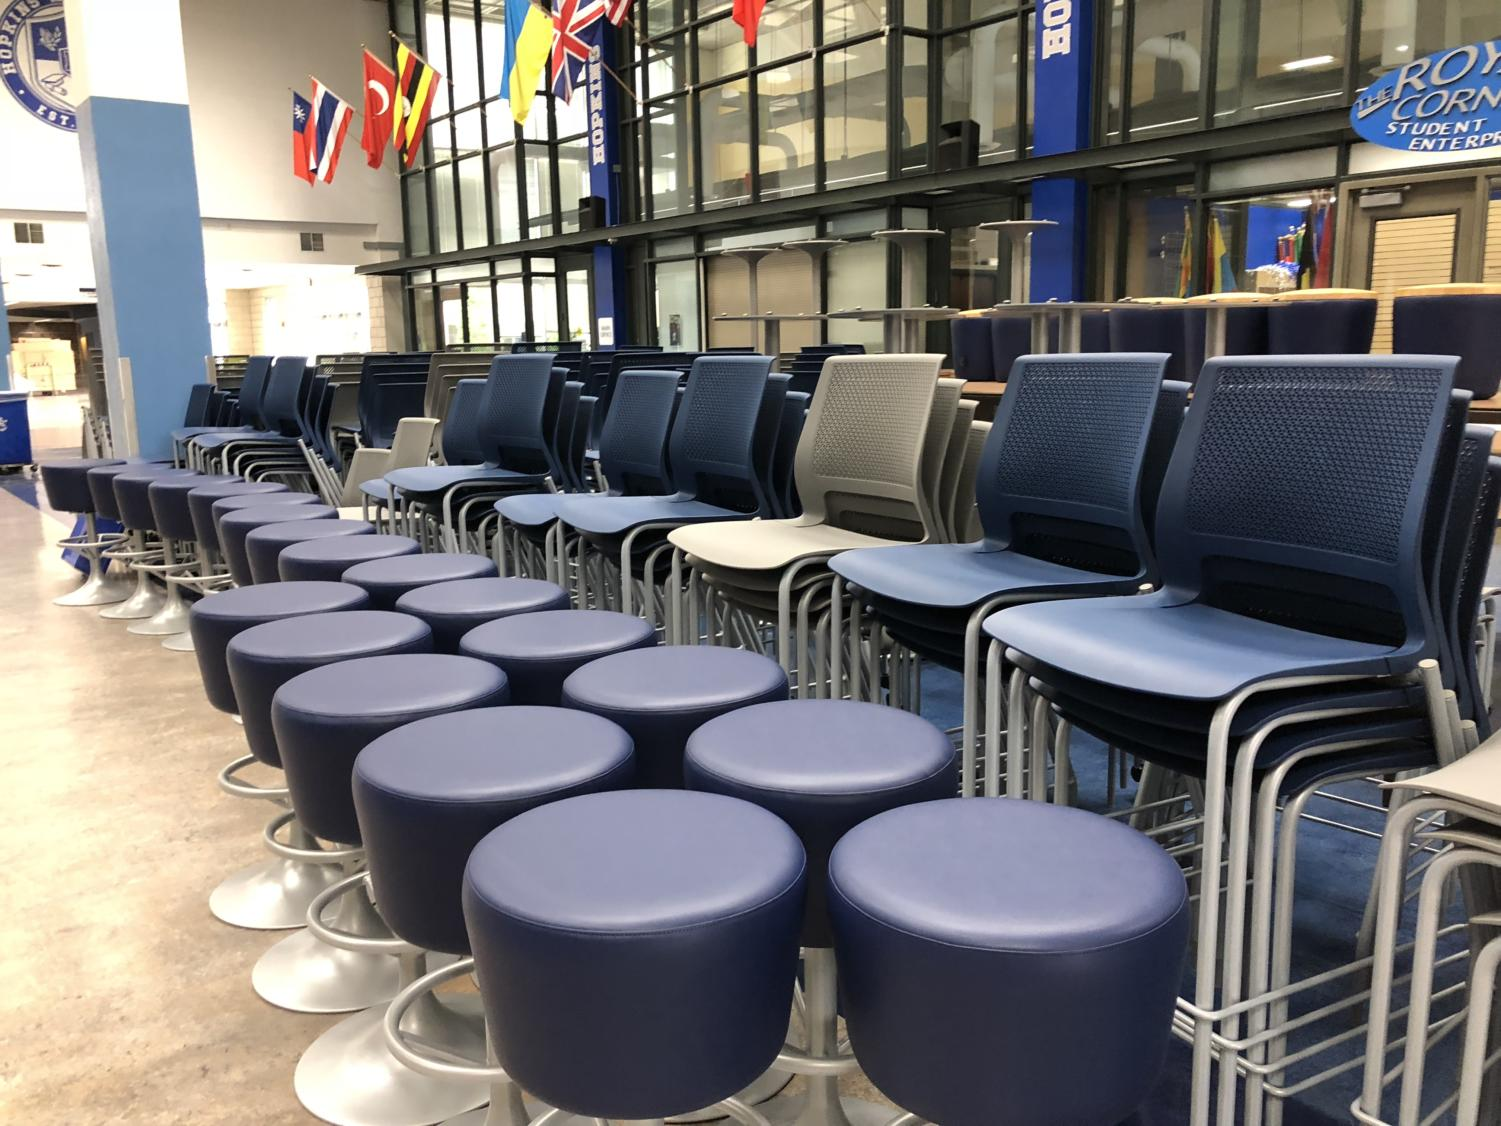 Various stools and chairs at HHS. Classrooms are trying to have more flexible learning spaces this upcoming school year.